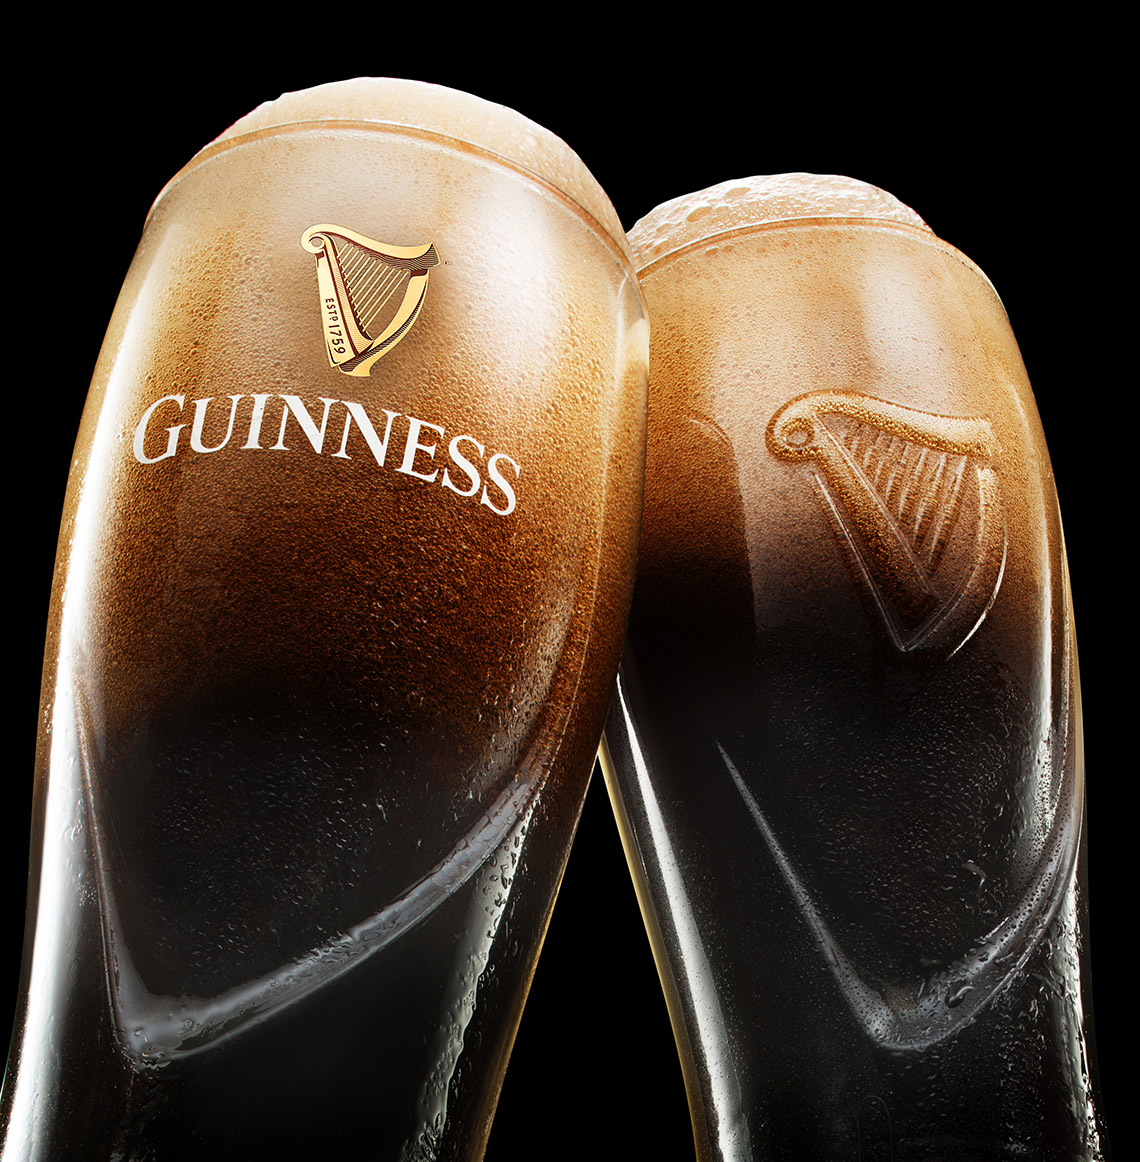 new-york-liquid-photography-drink-photography-guinness-double-glass